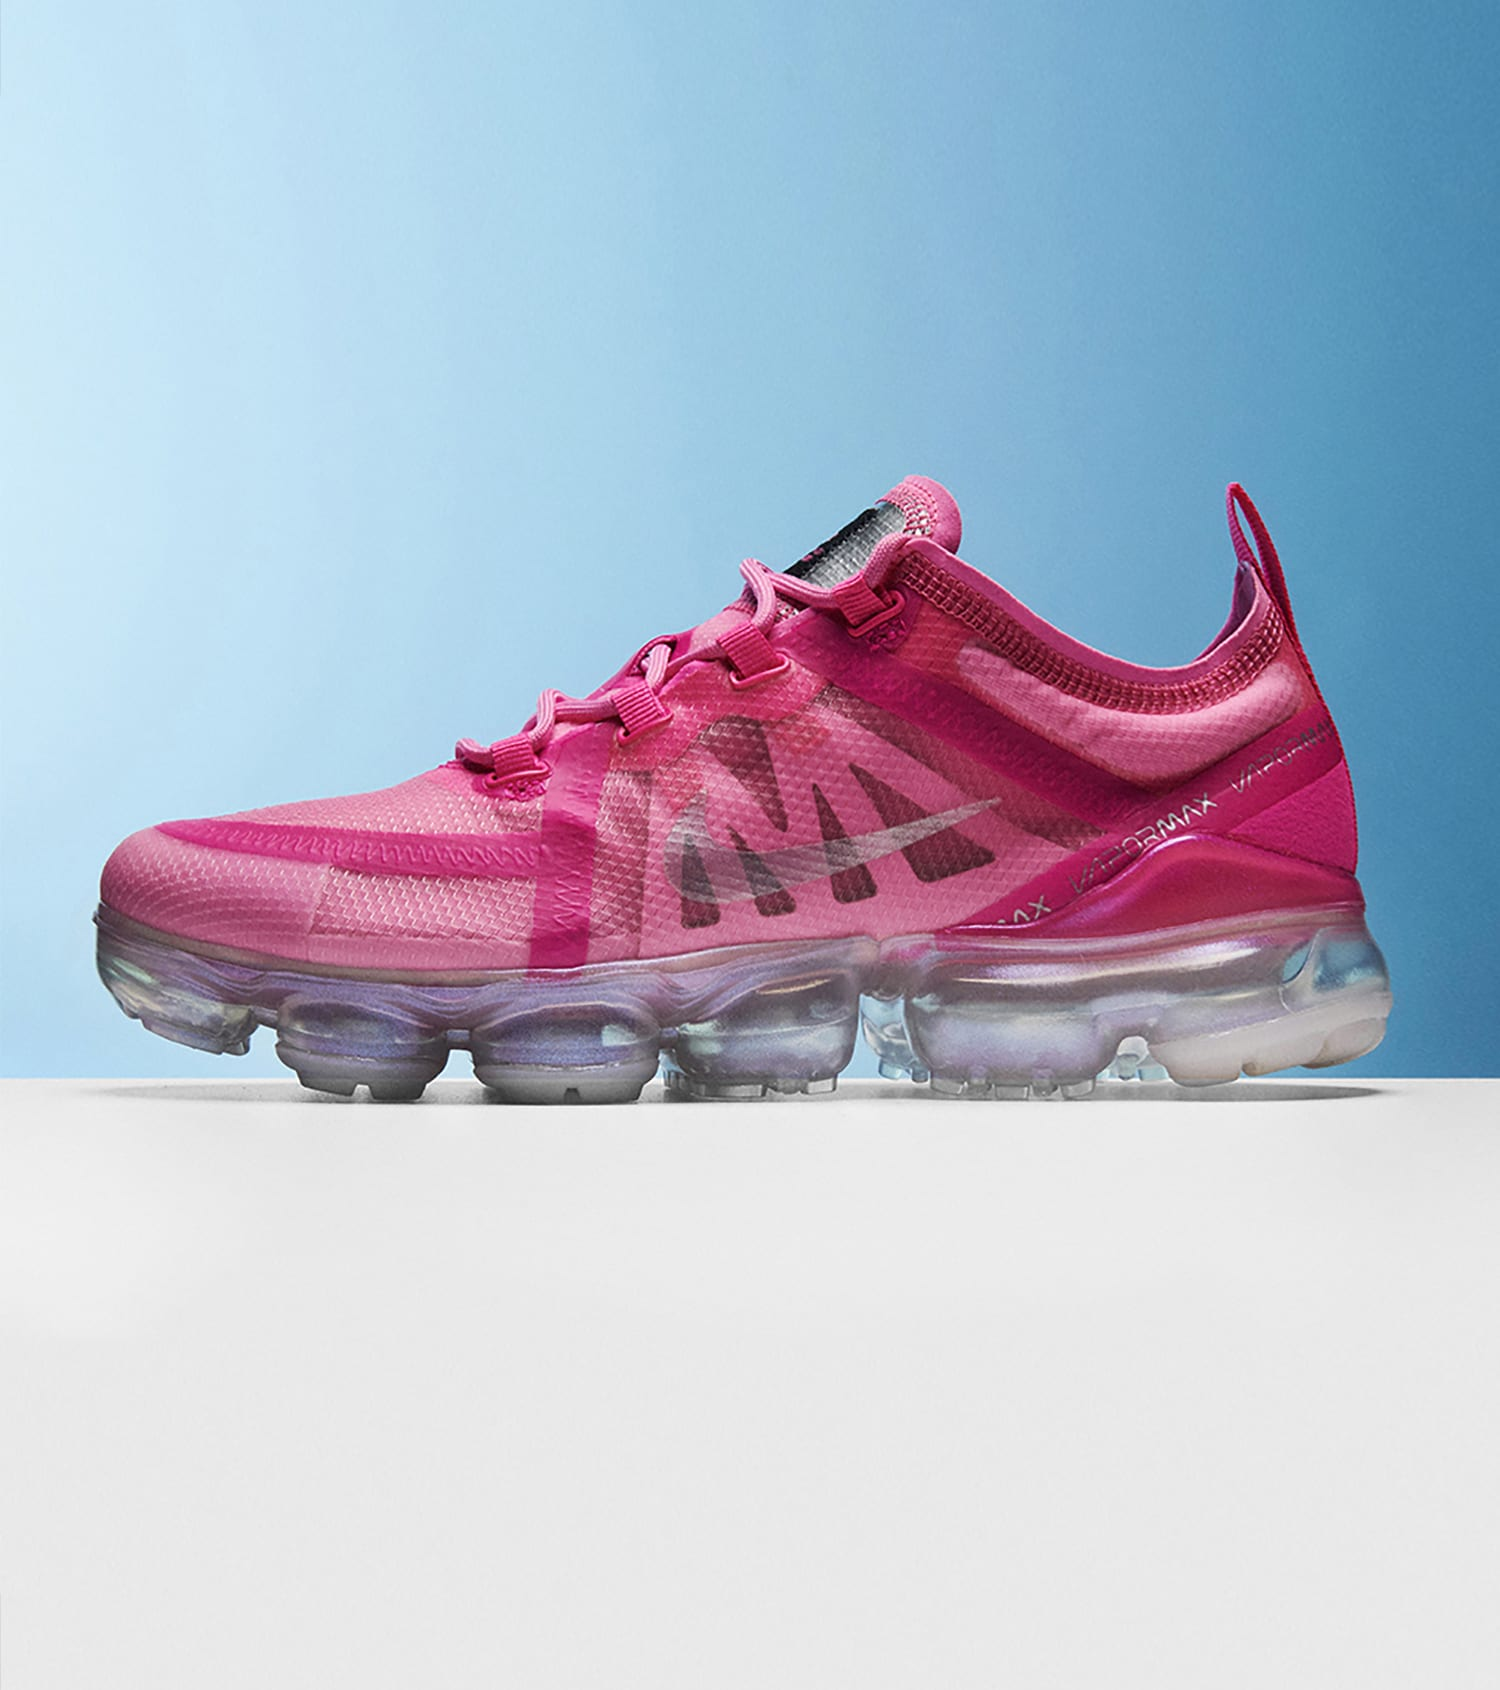 uk availability 03b89 101f7 Air Vapormax 2019